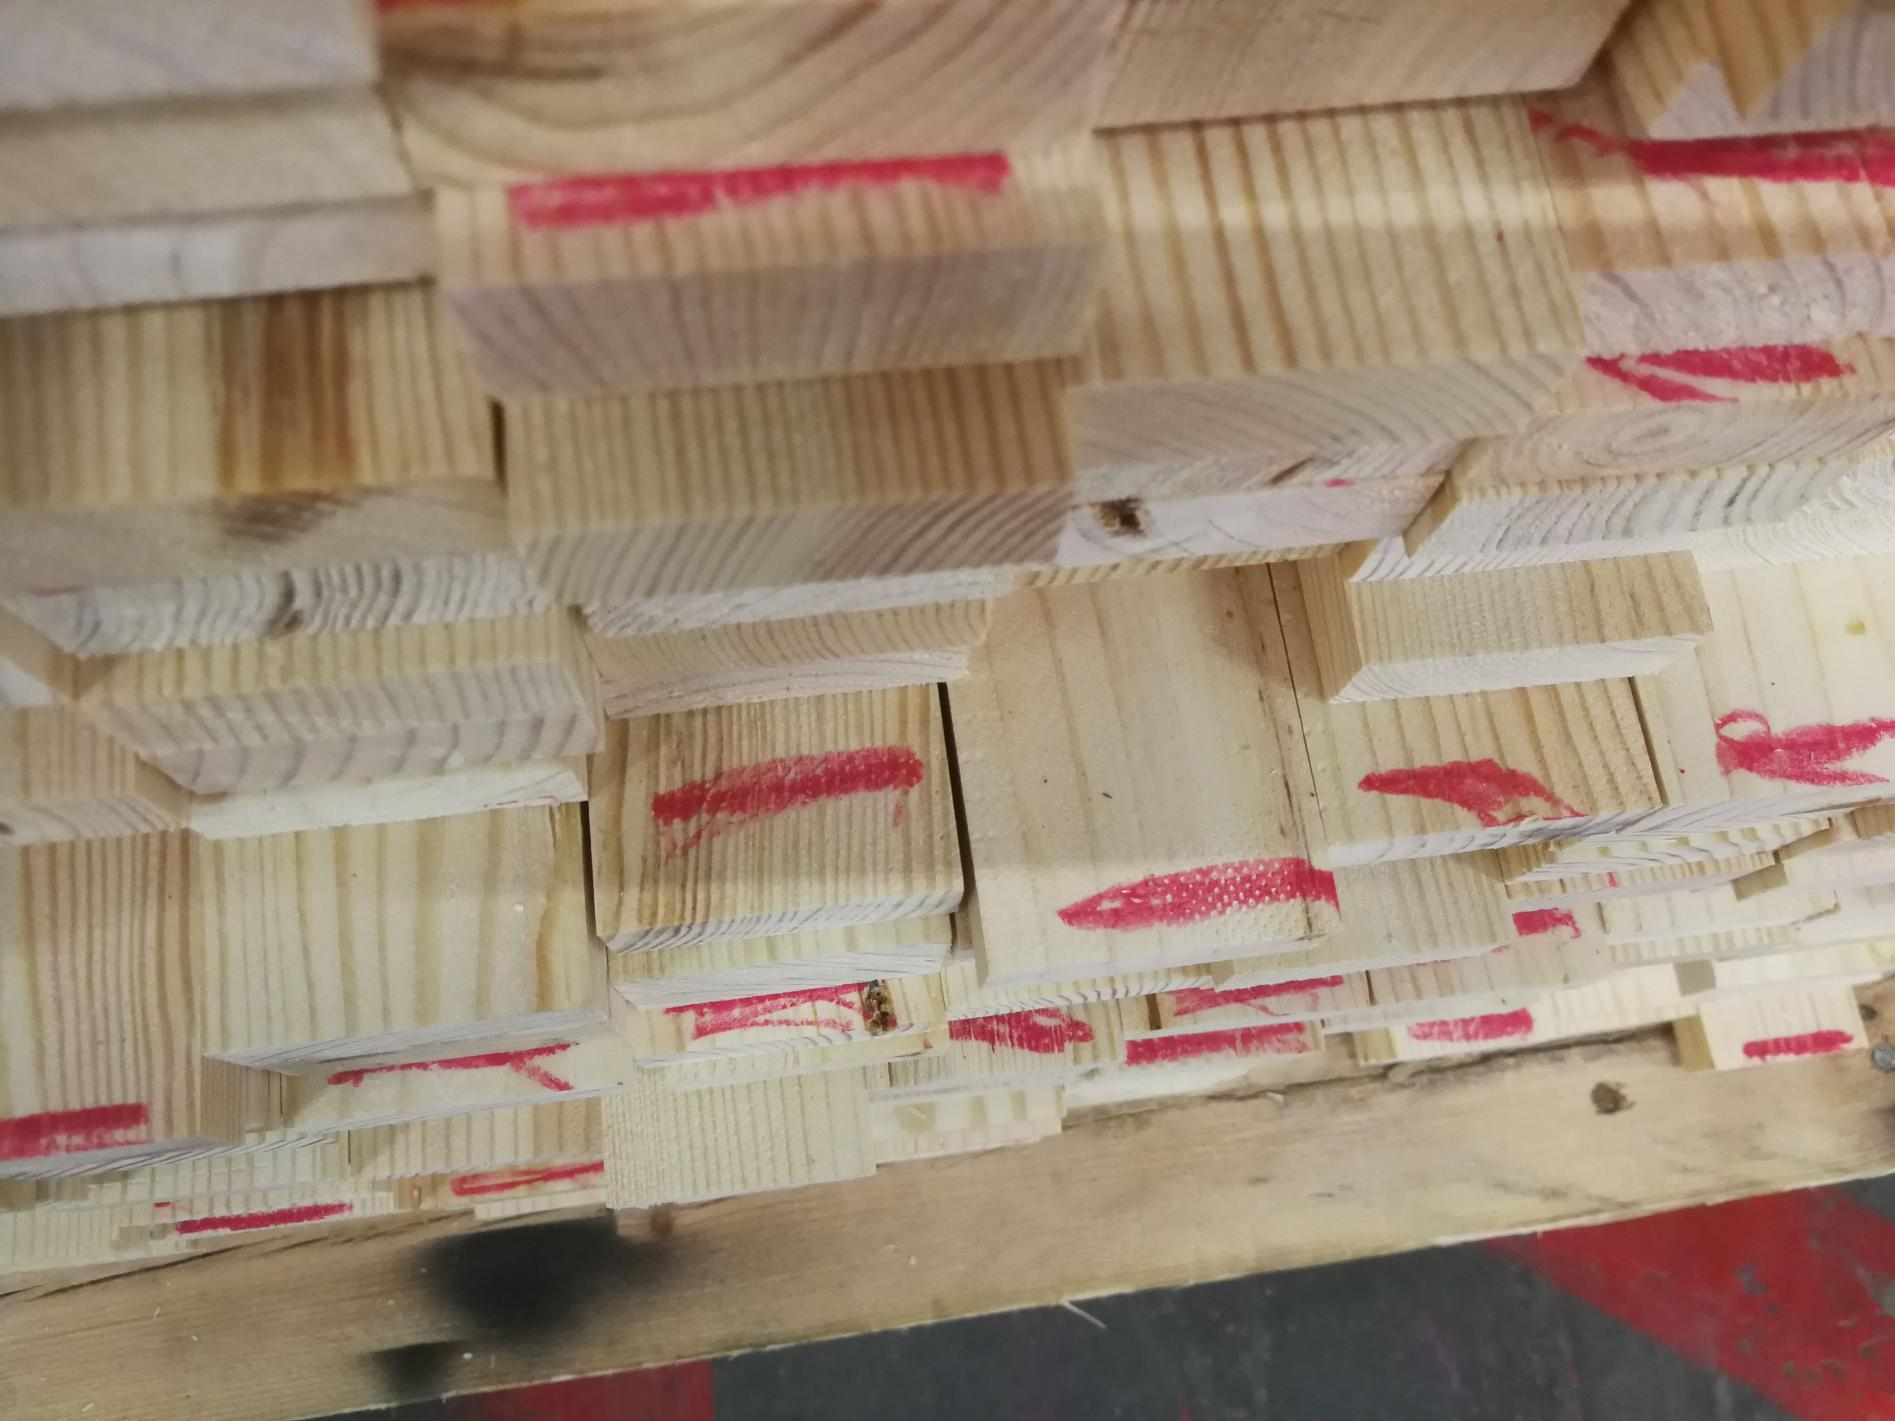 Quality control of fascia board defects